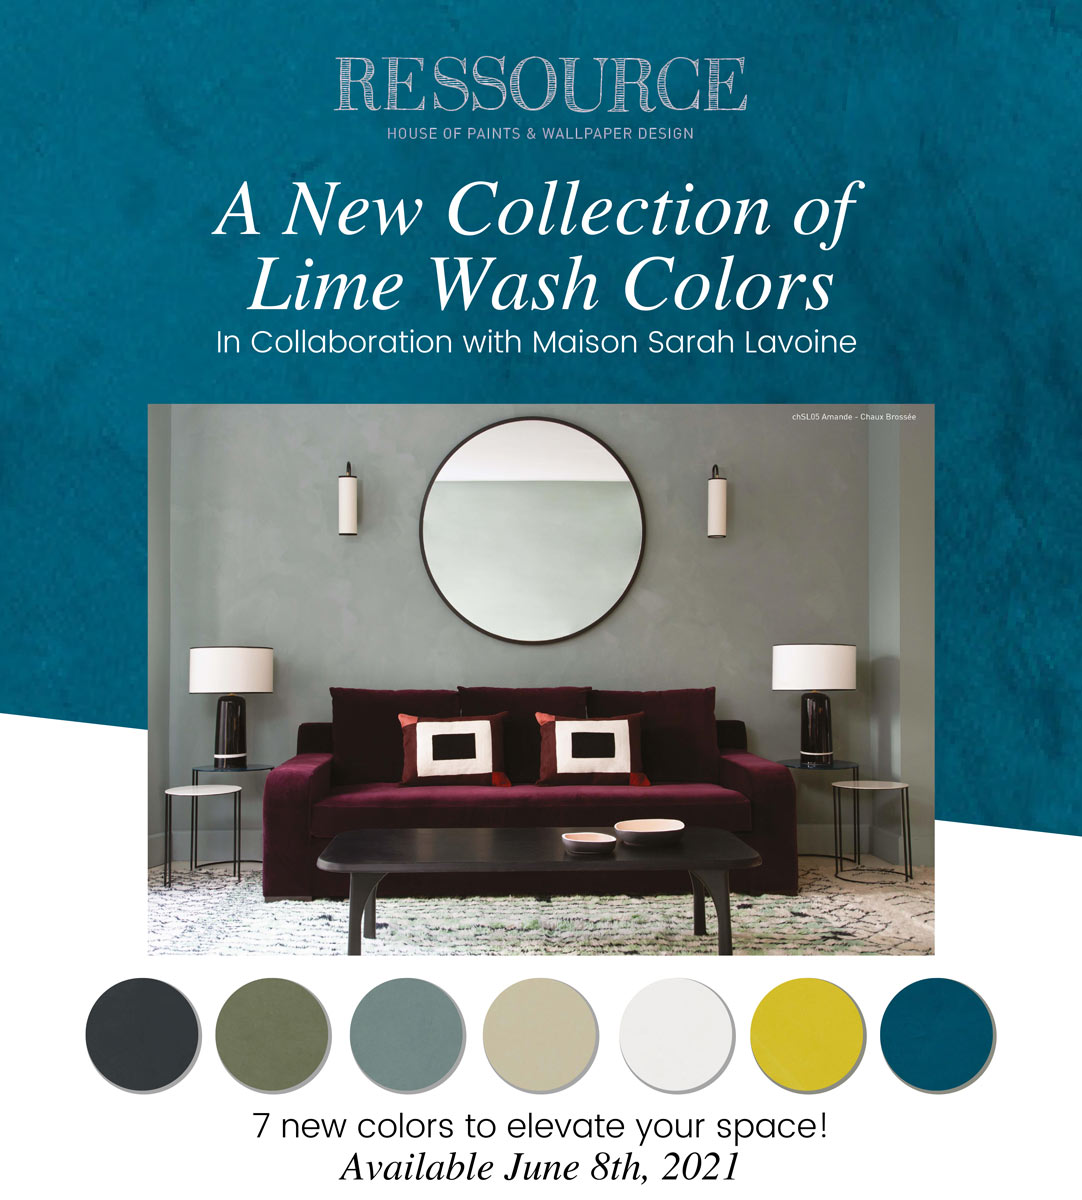 Ressource: A New Collection of Lime Wash Colors